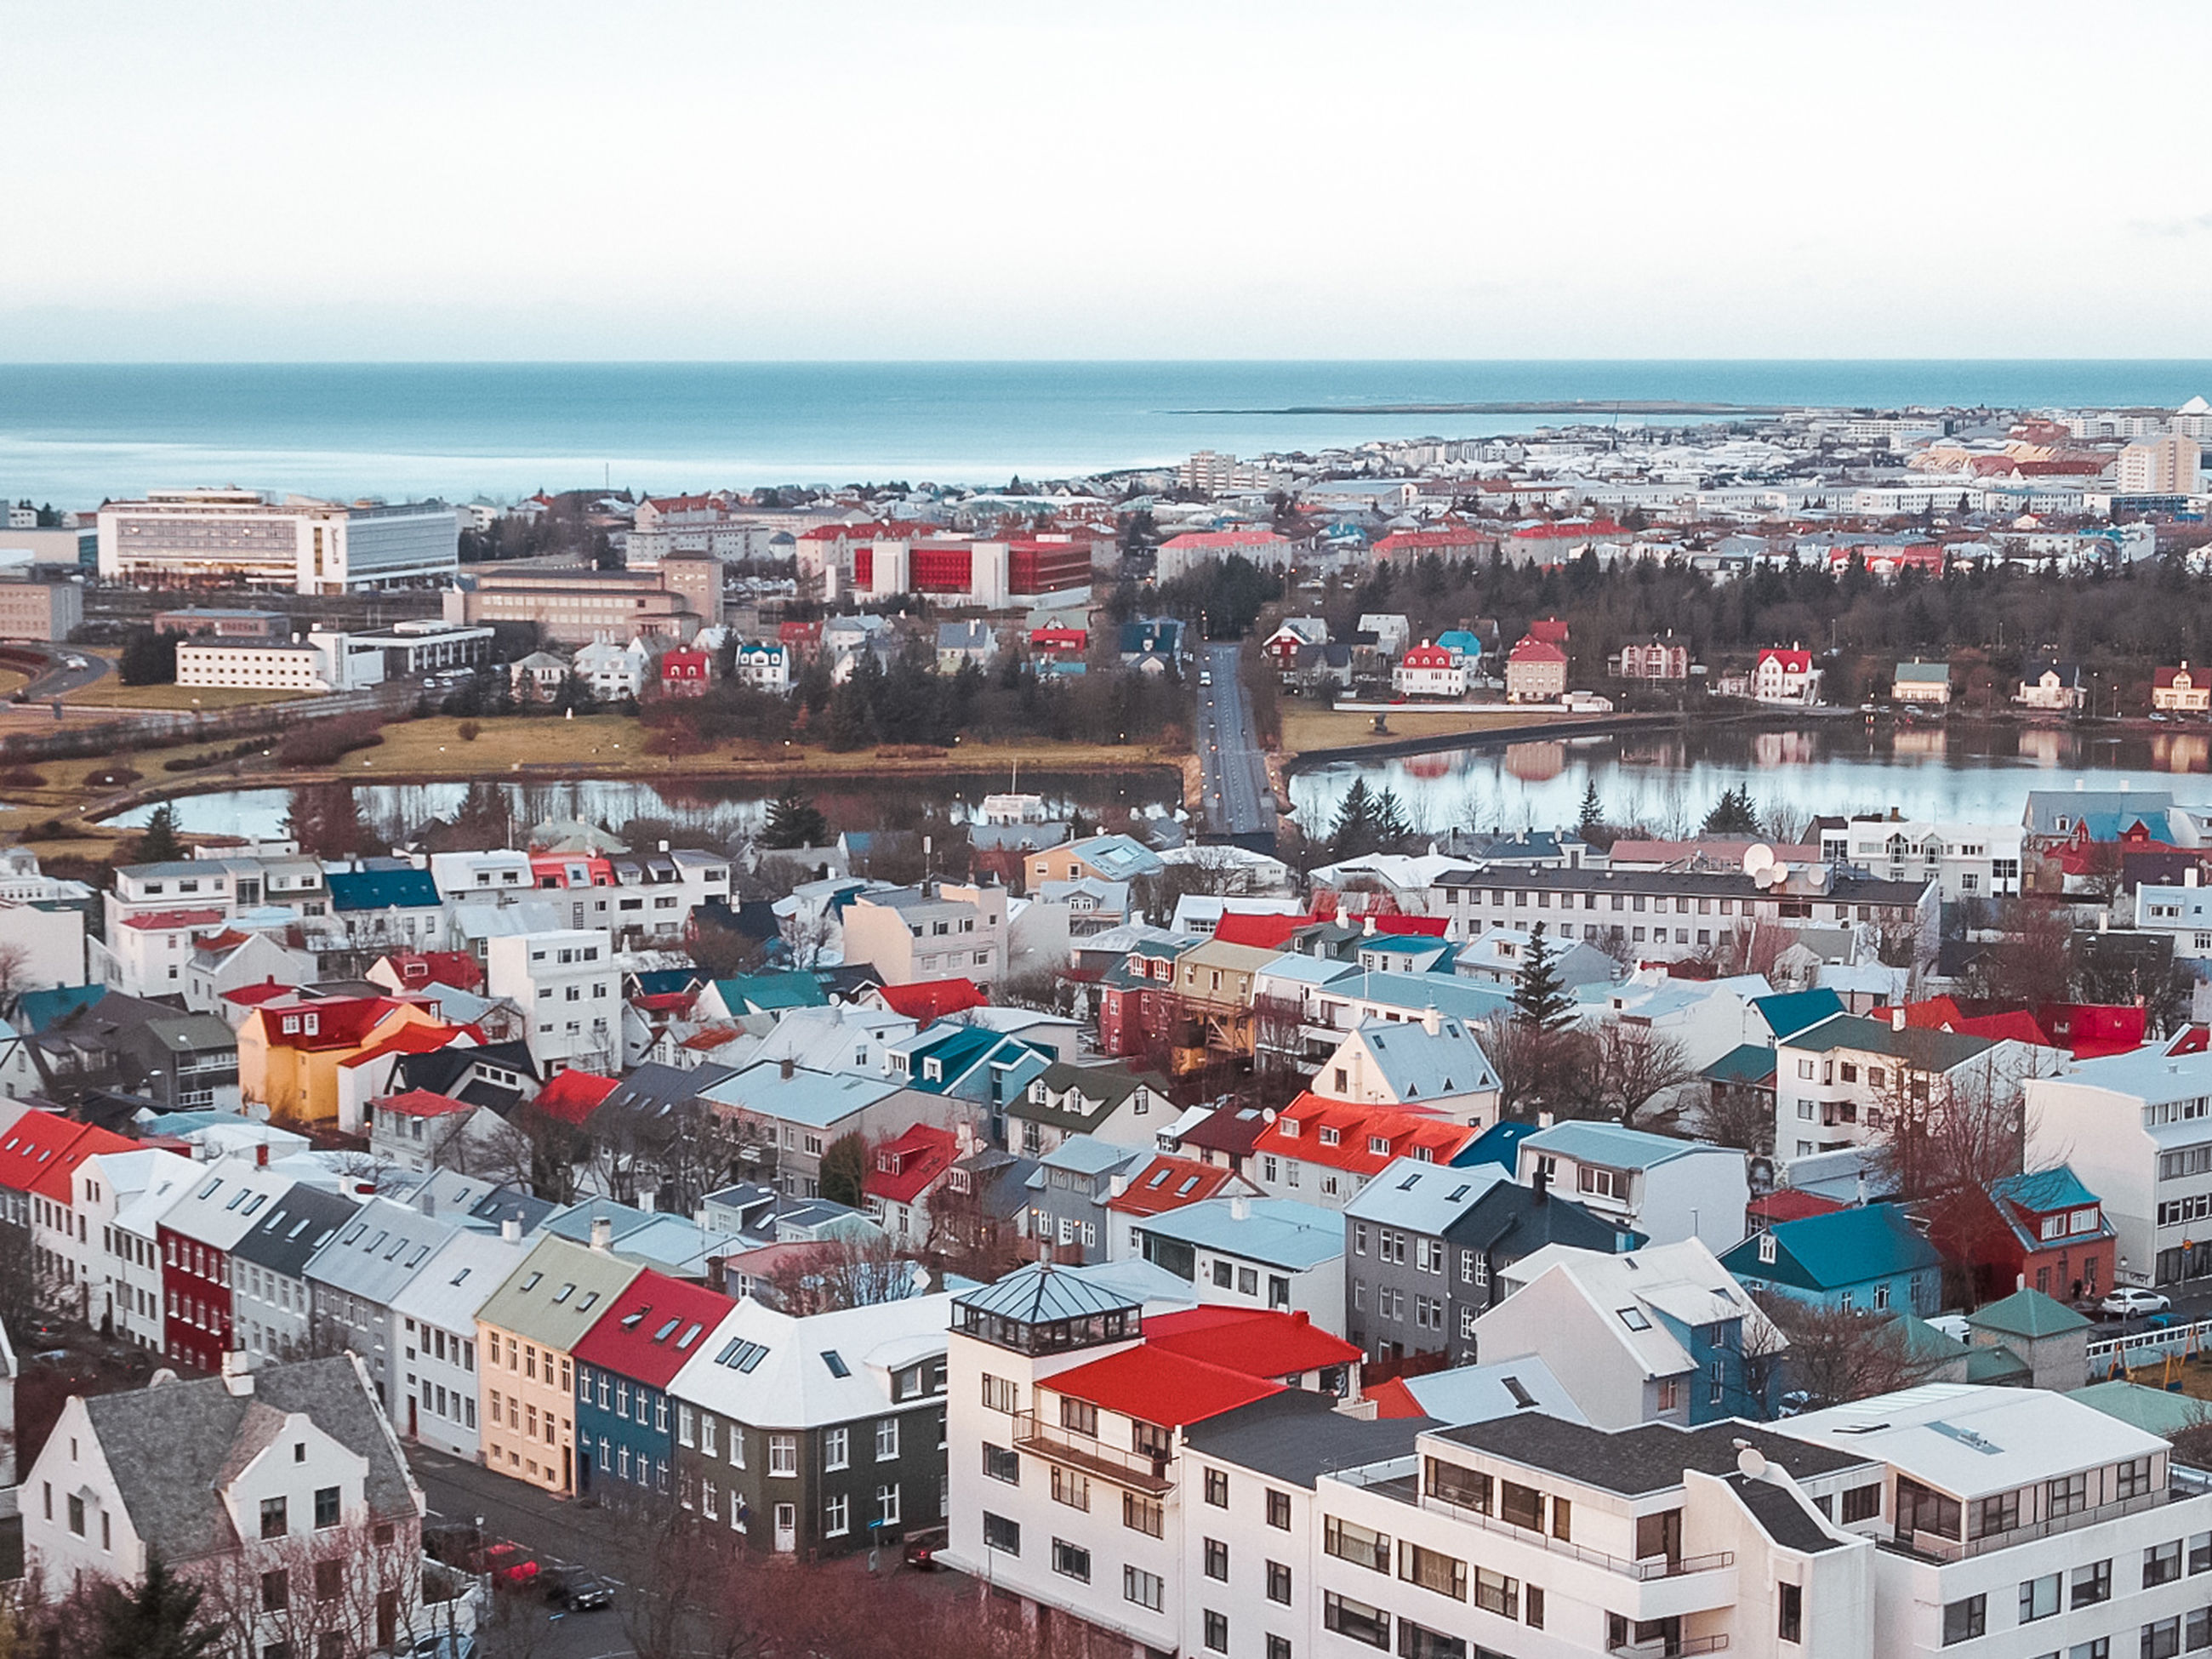 architecture, building exterior, built structure, sky, sea, city, water, horizon, horizon over water, cityscape, building, high angle view, crowd, day, residential district, crowded, nature, outdoors, community, townscape, settlement